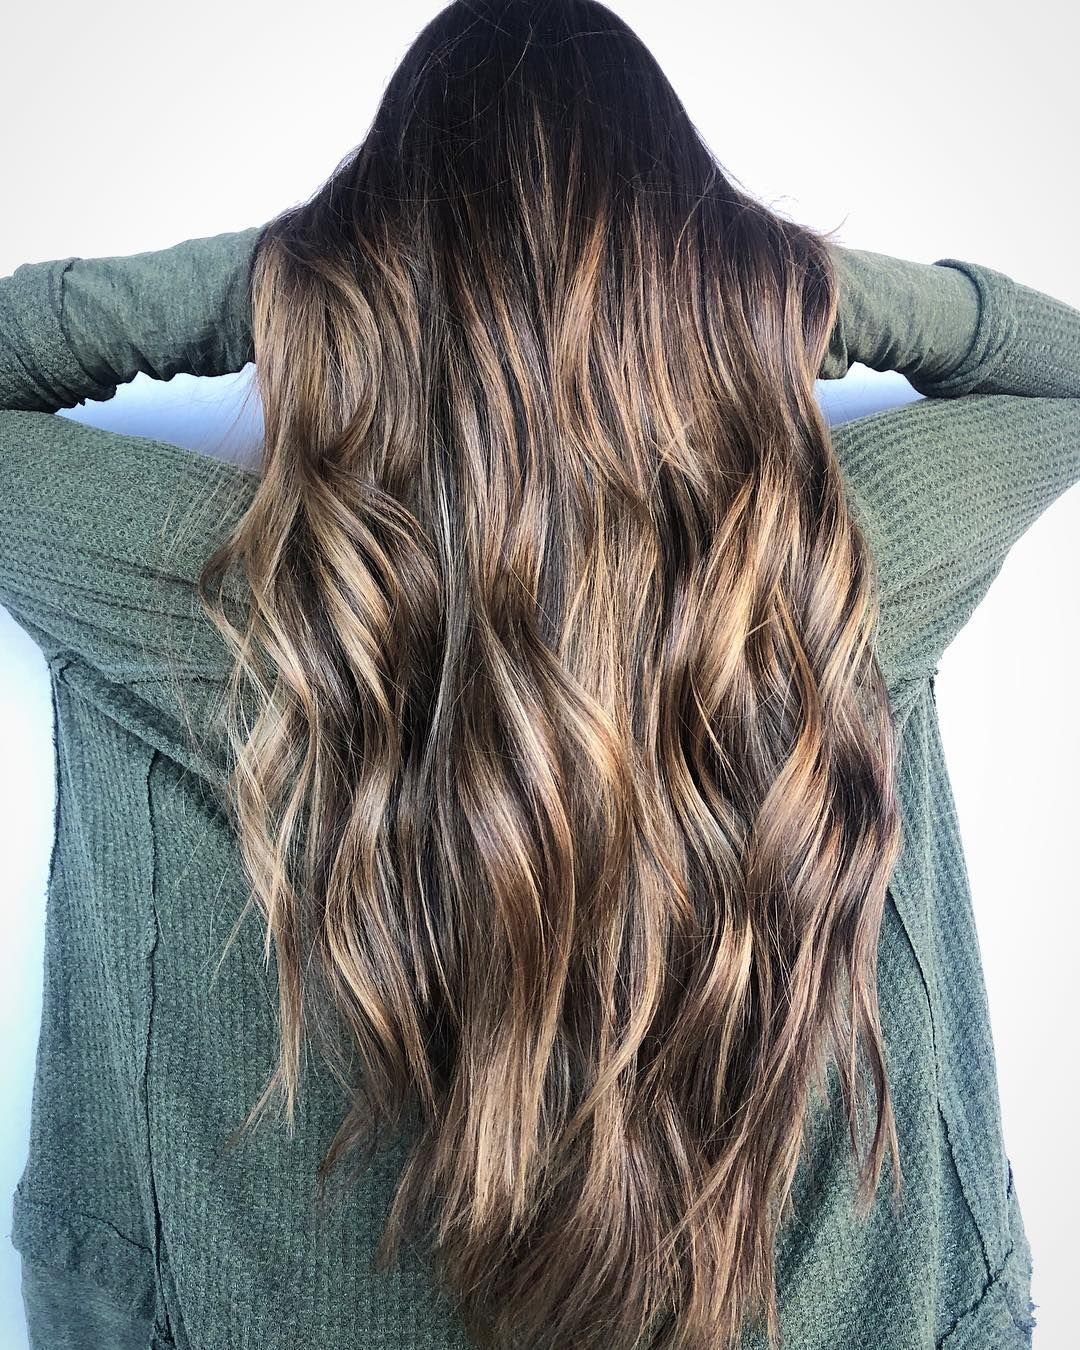 Balayage Hair Color Idea,Fall balayage hair color #balayage #blondebalayage #foilayage #blondehair #blondehighlights #fallhair #hairpainting #hairpainters